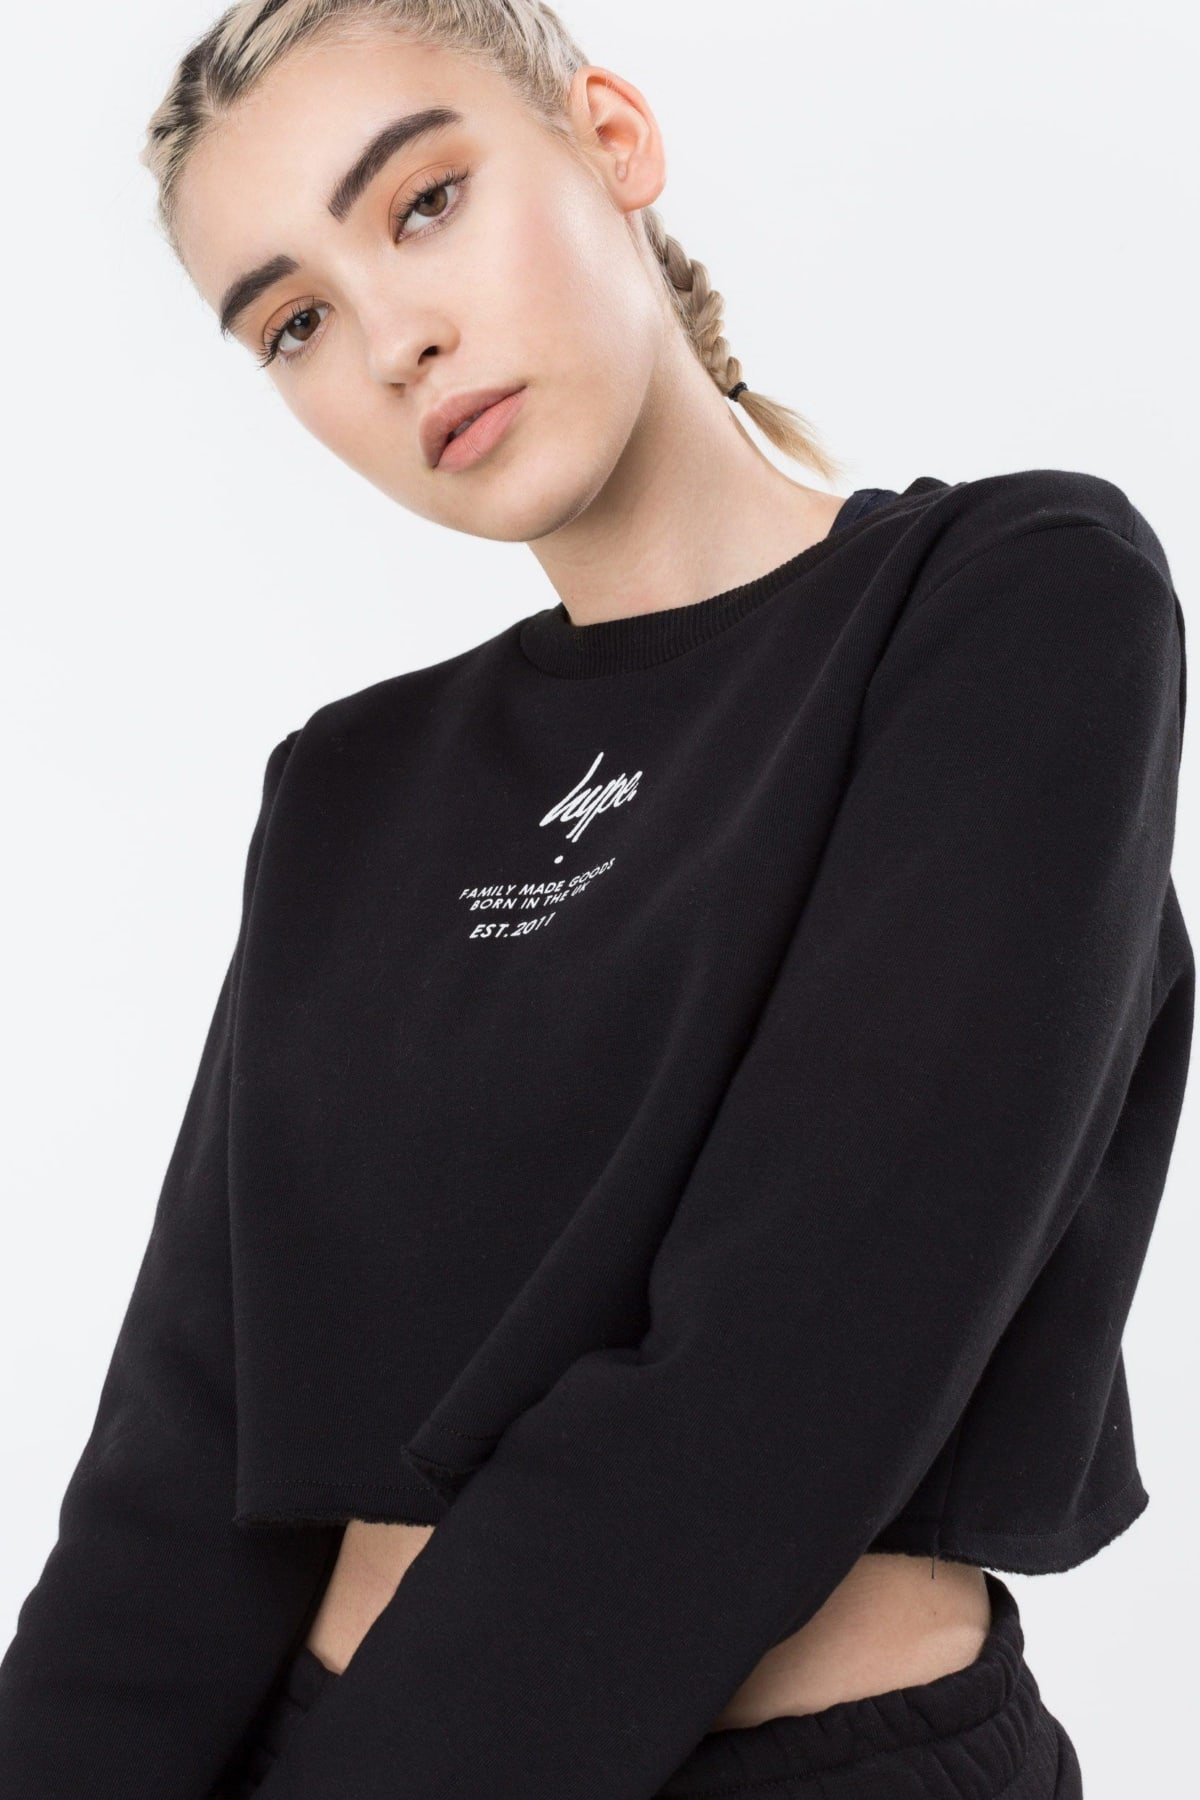 HYPE Black/White Fmg Women's Raw Crop Crew